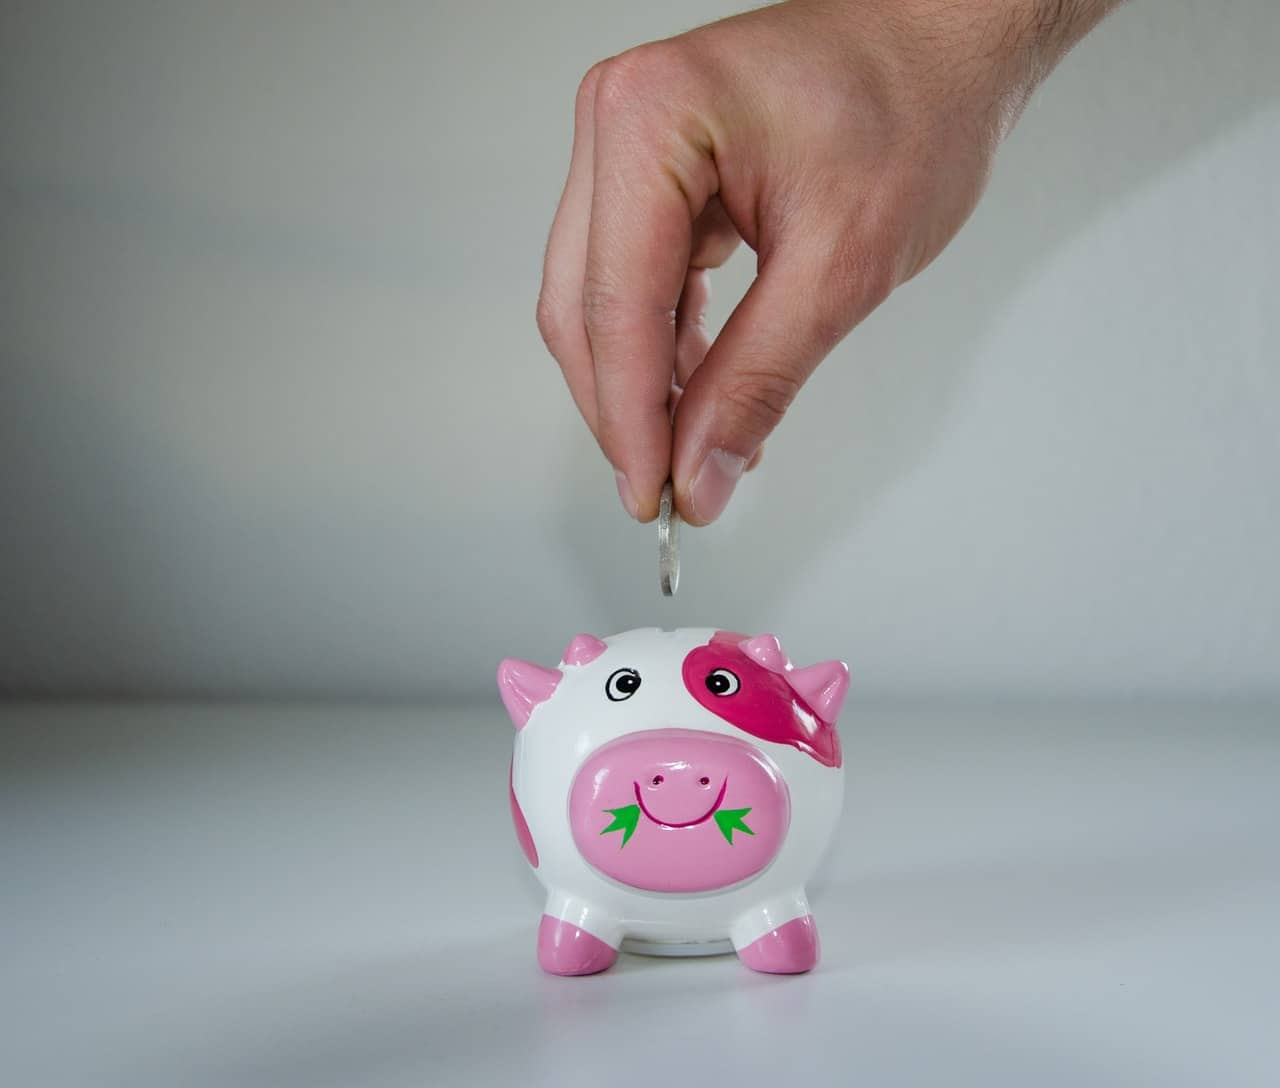 How To Savings Started Header Image